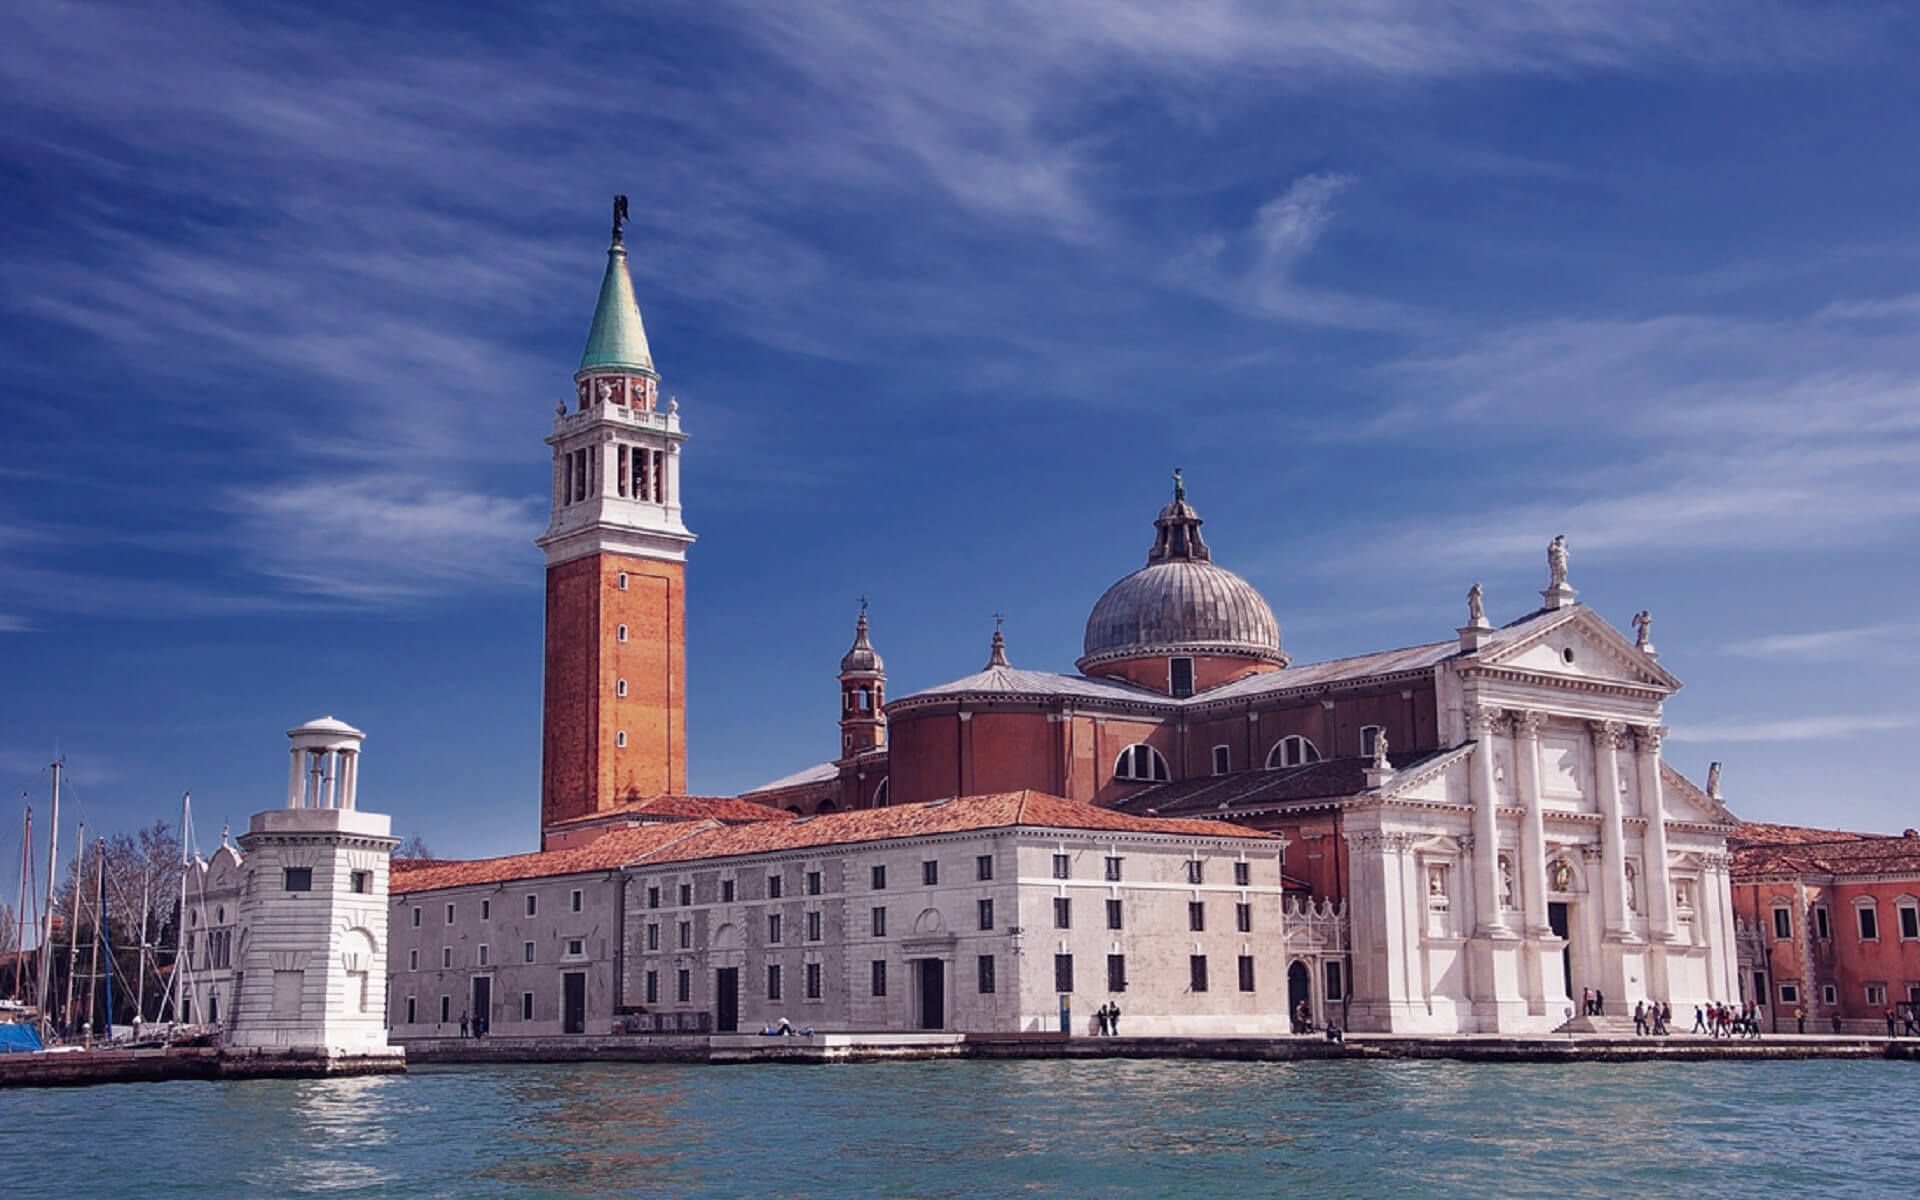 San Giorgio Maggiore - How to spend the perfect weekend in Venice, Italy